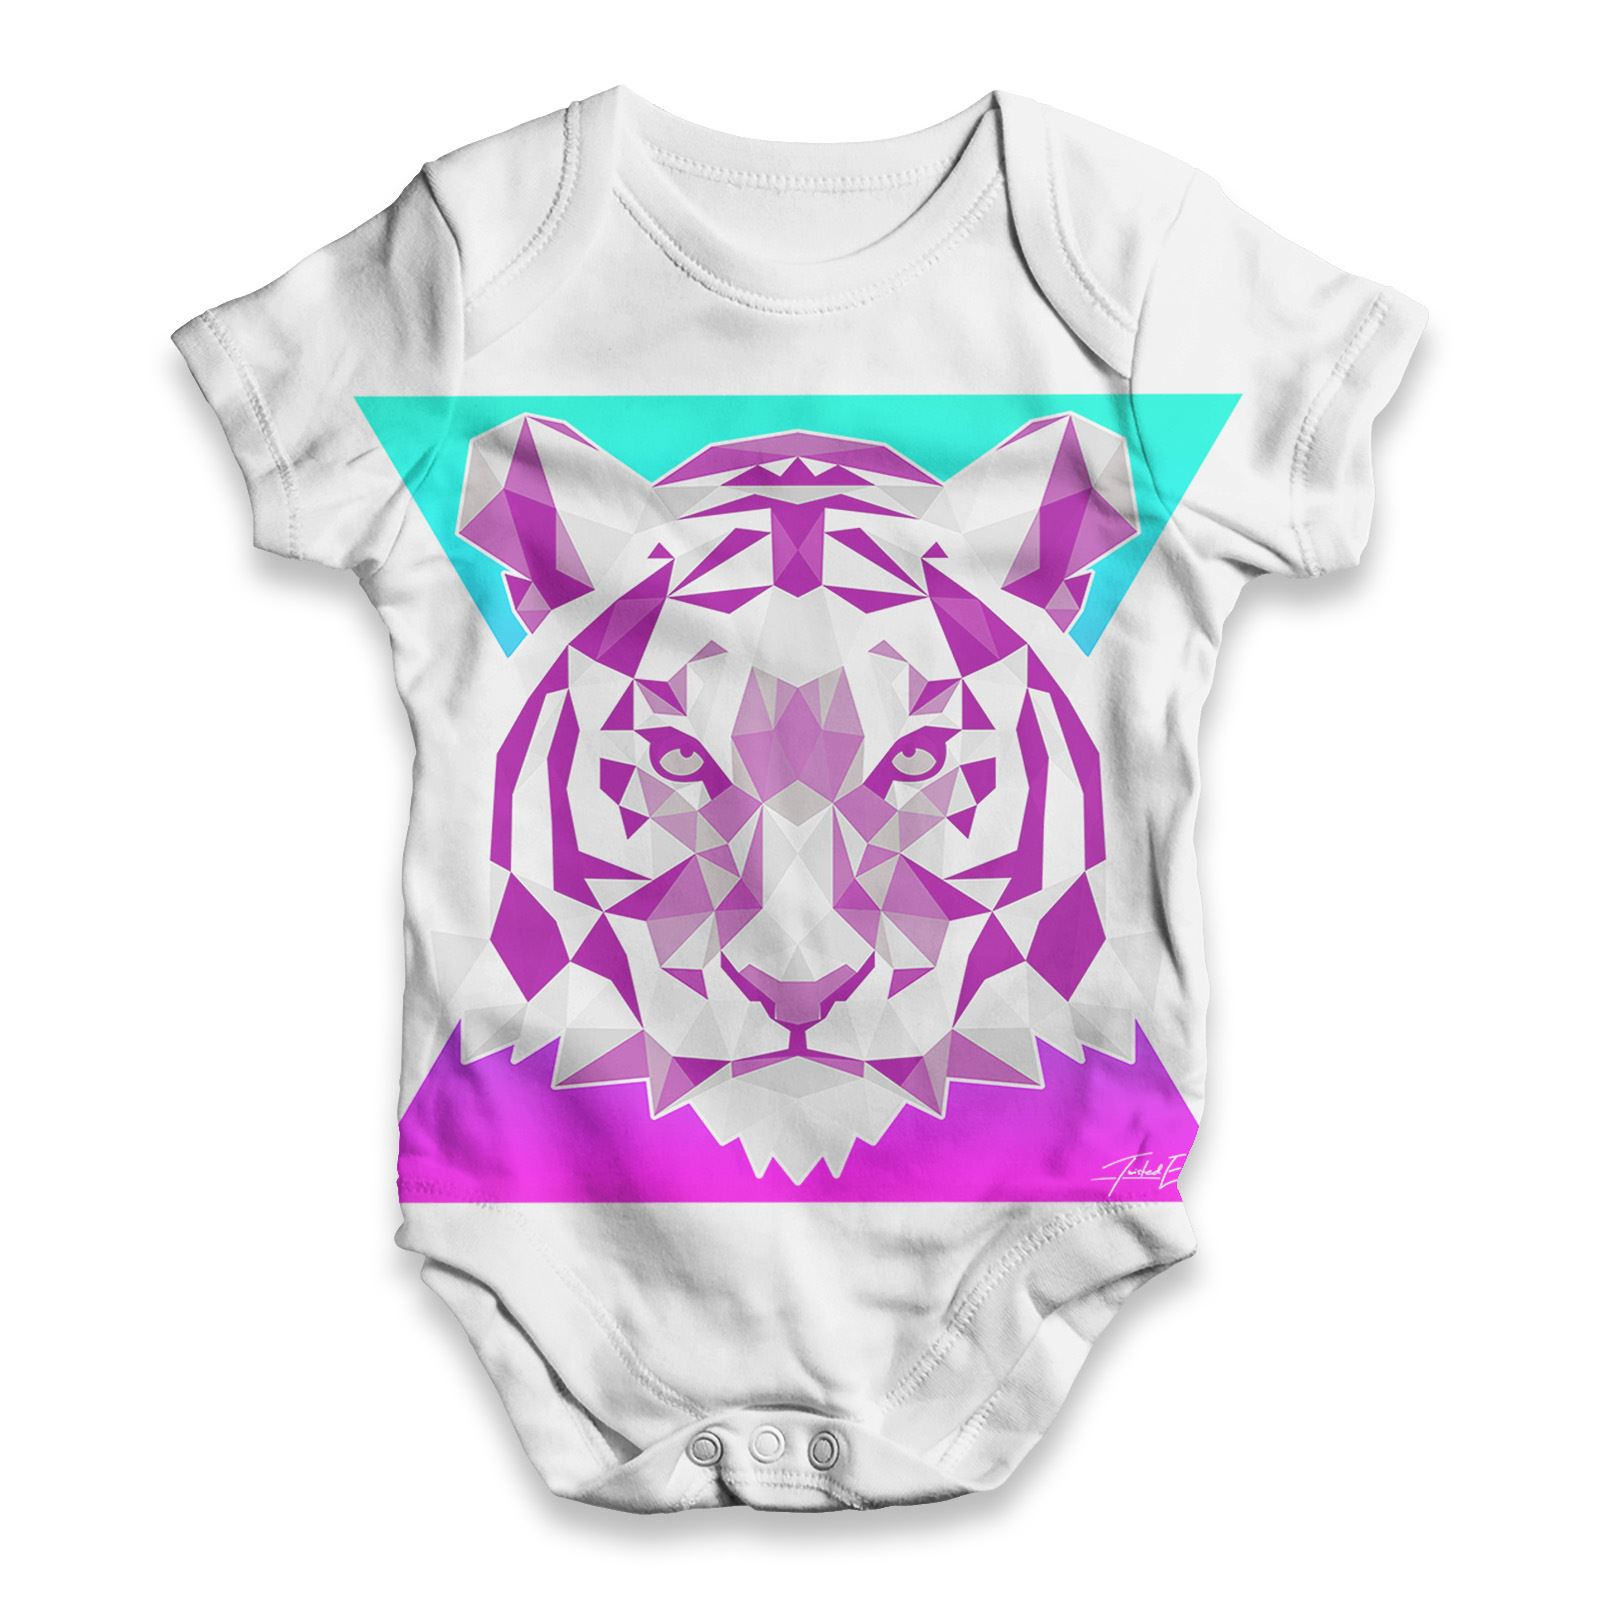 Jinks Galactic Cat Face Baby Toddler Funny ALL-OVER PRINT Baby T-shirt